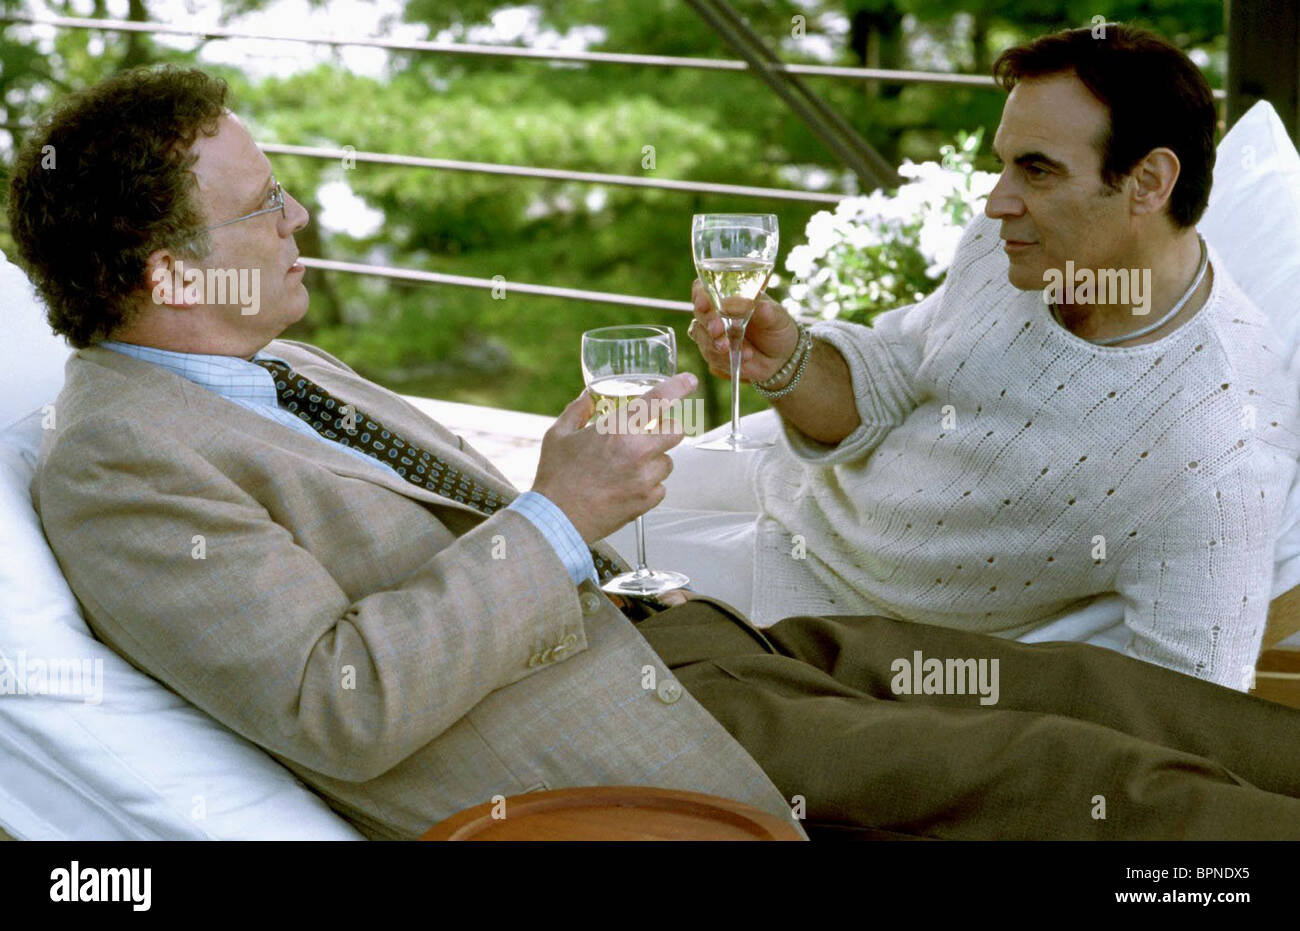 ALBERT BROOKS & DAVID SUCHET THE IN-LAWS (2003) - Stock Image